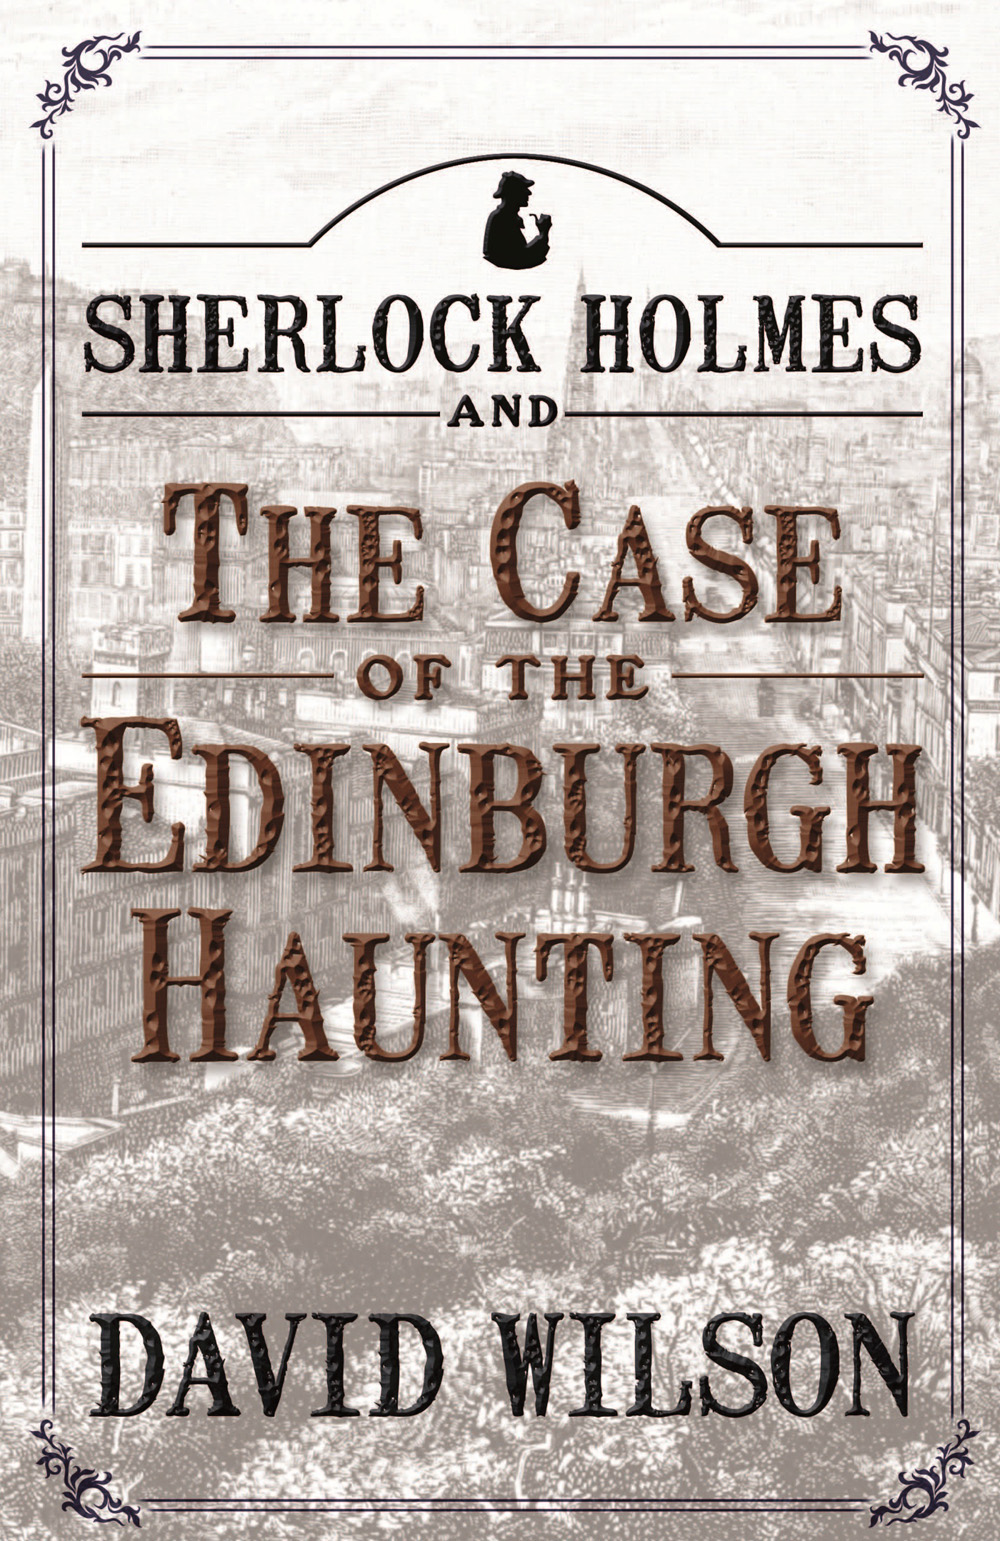 Sherlock Holmes and The Case of The Edinburgh Haunting By: David Wilson